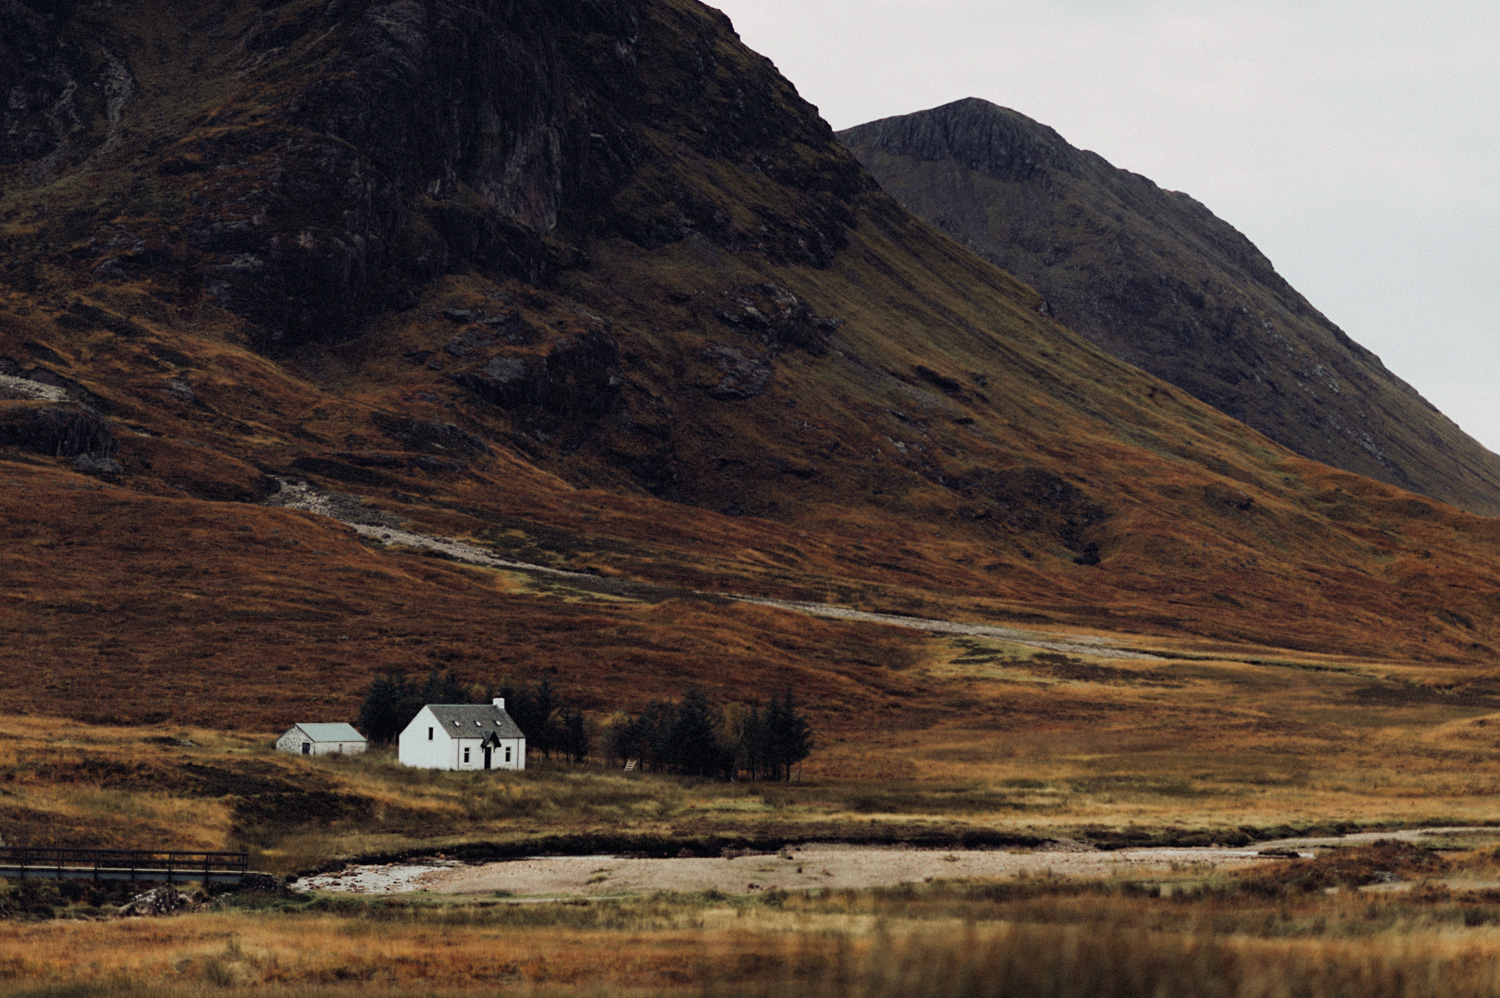 White Cottage at River Coupall Valley in Scotland